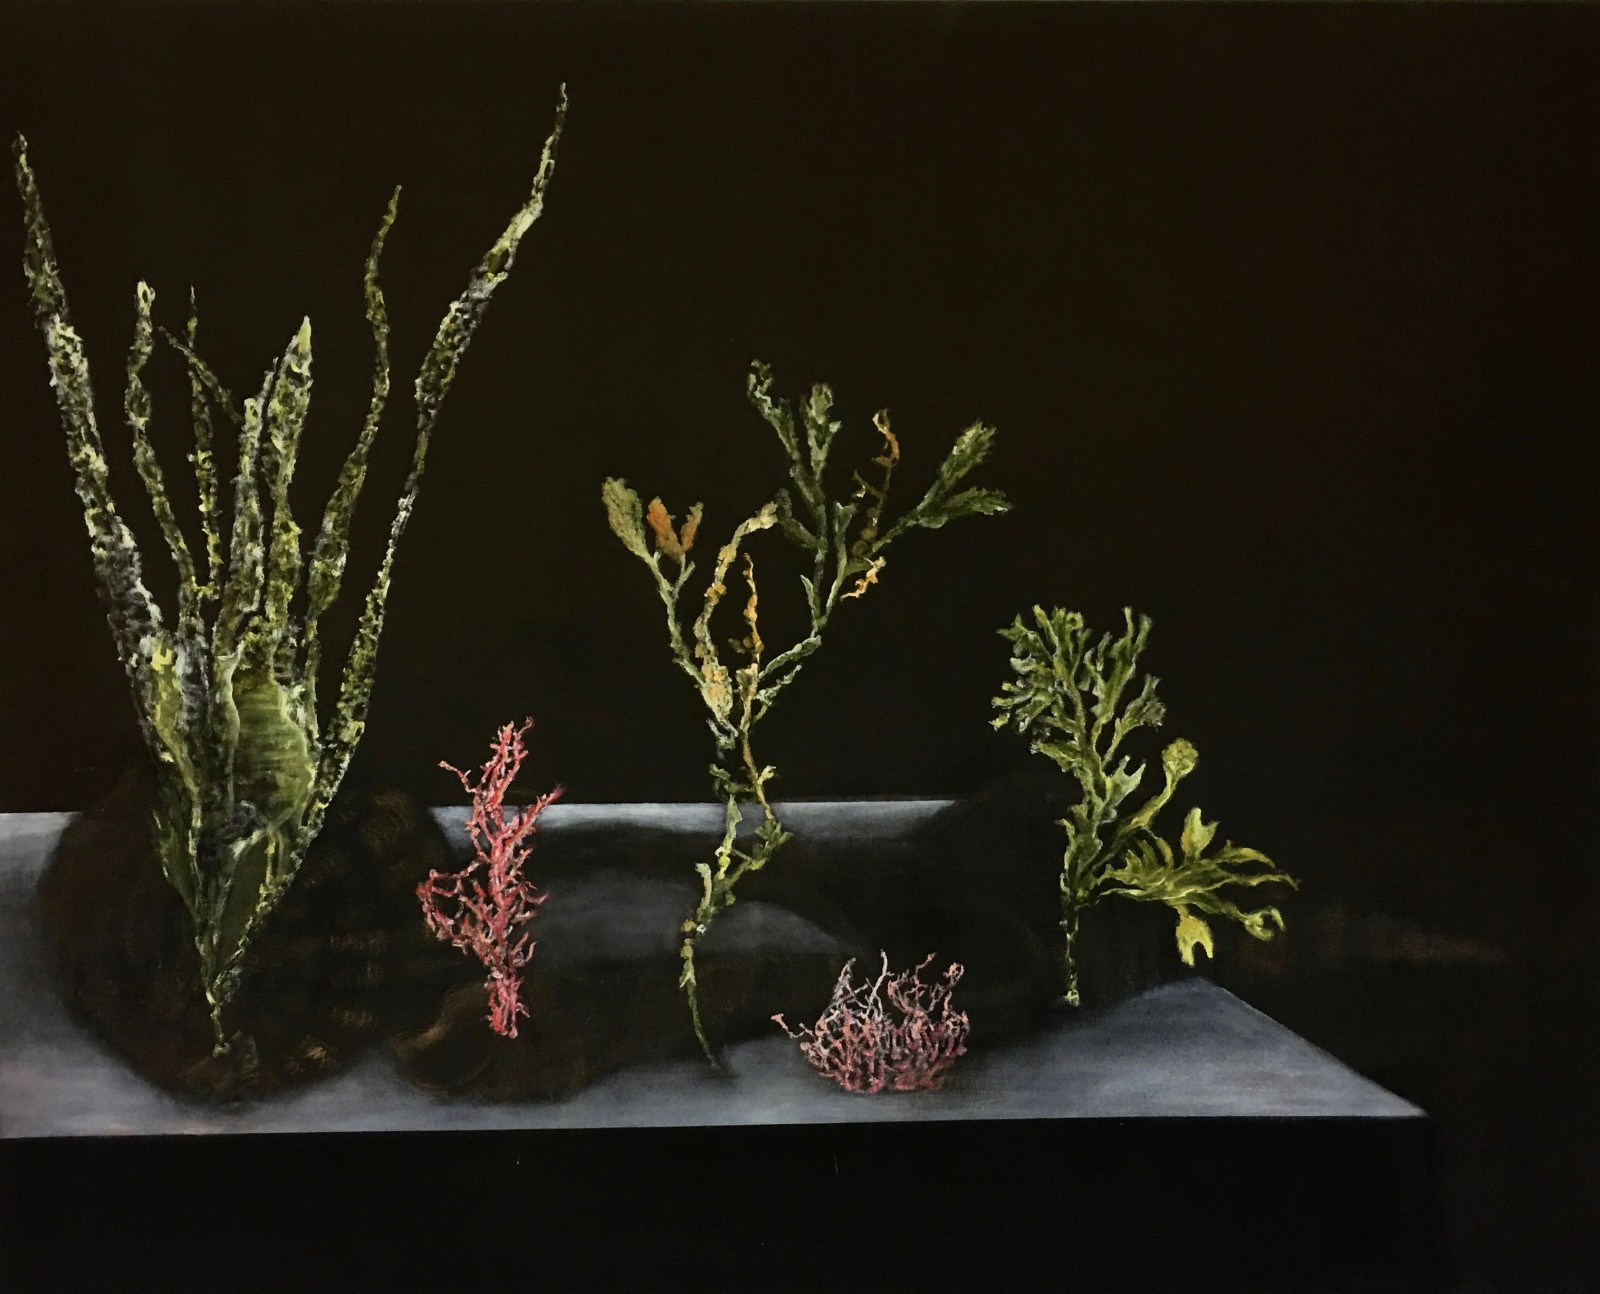 Still Life With Sea Weed af Irene Grundel